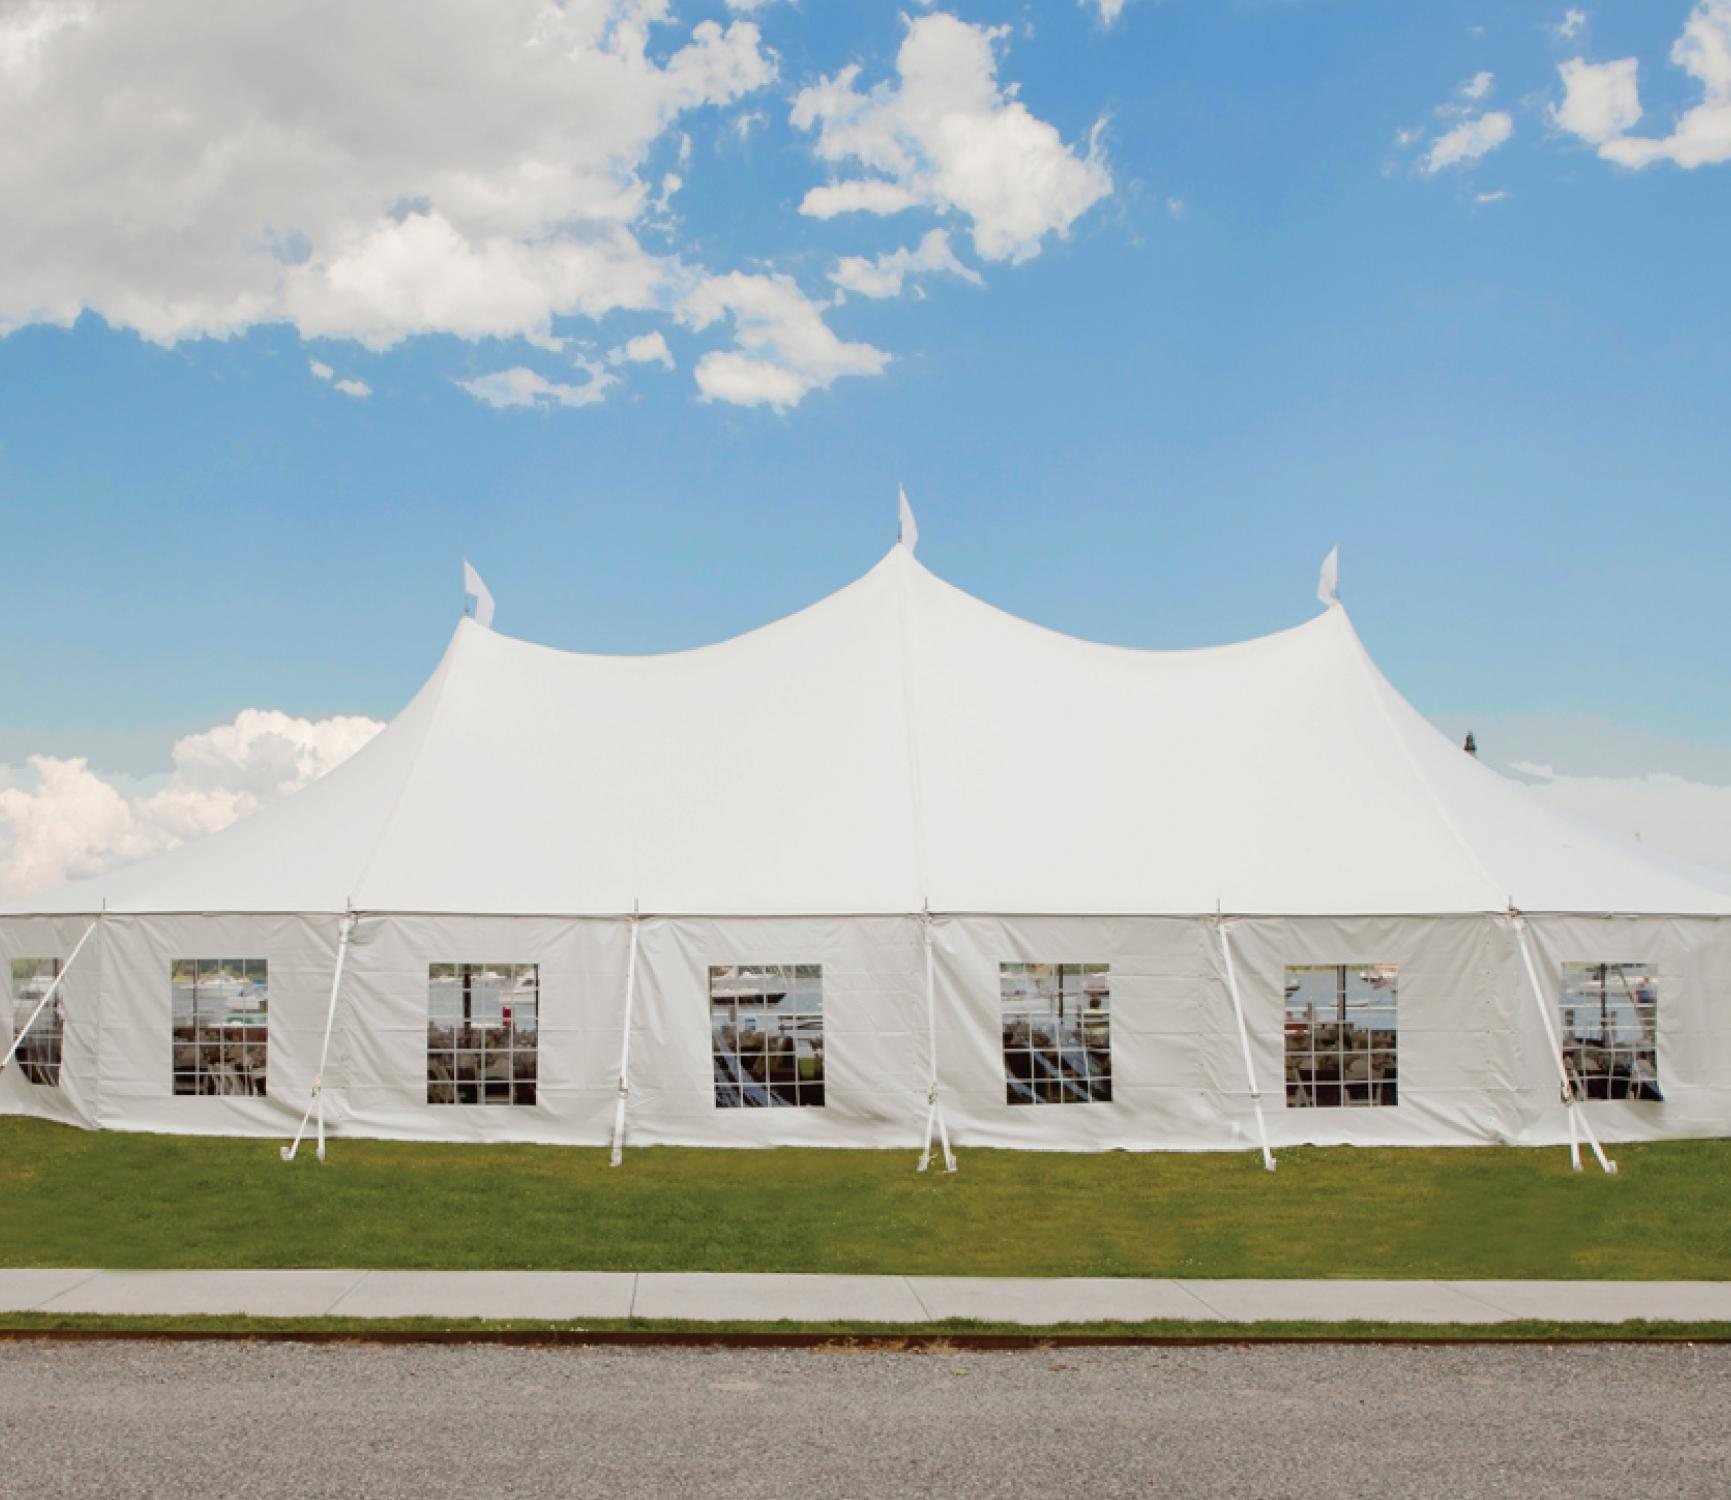 Stillwater sailcloth tent by the water